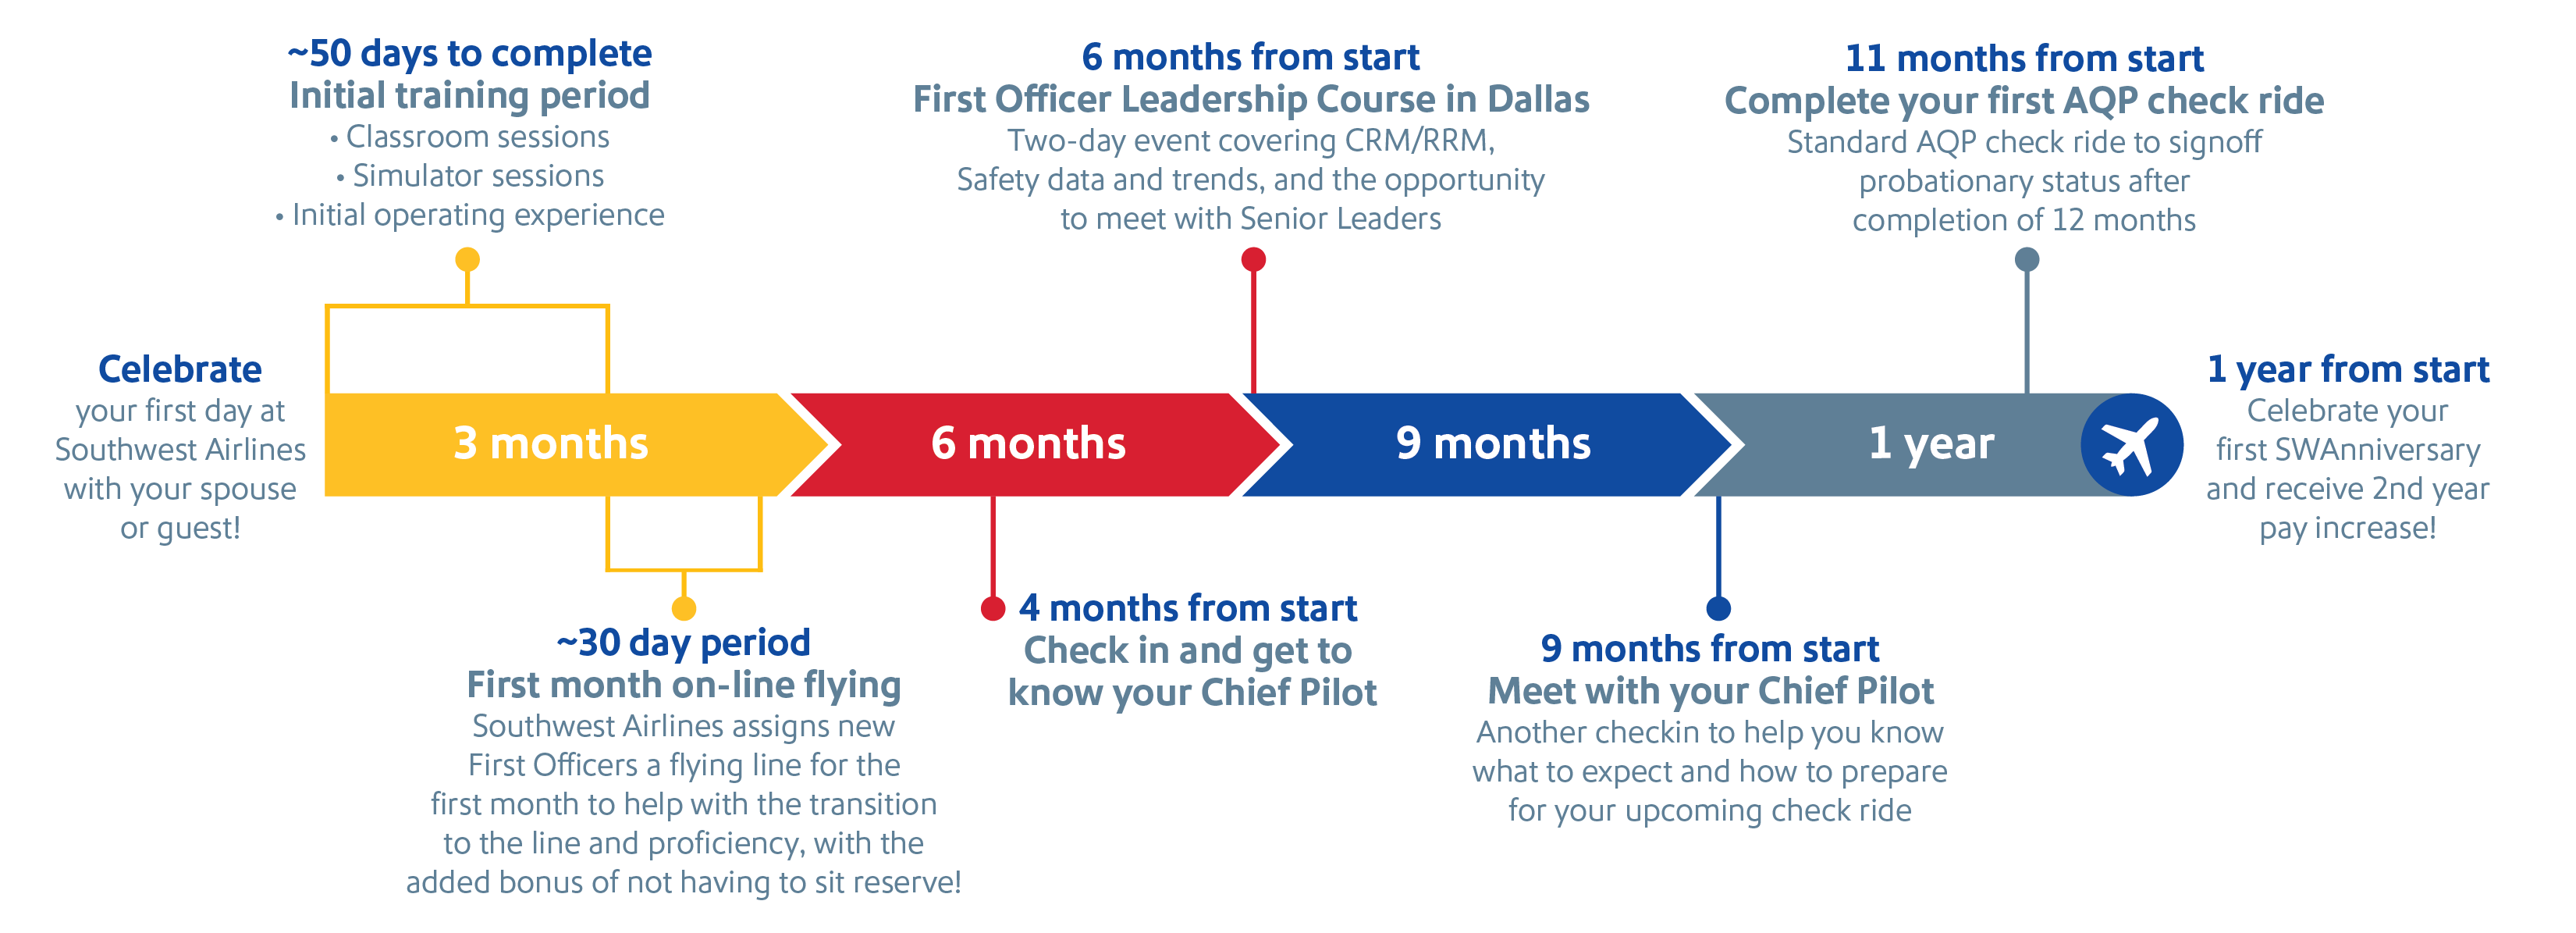 Image that describes a Pilot's first year at Southwest